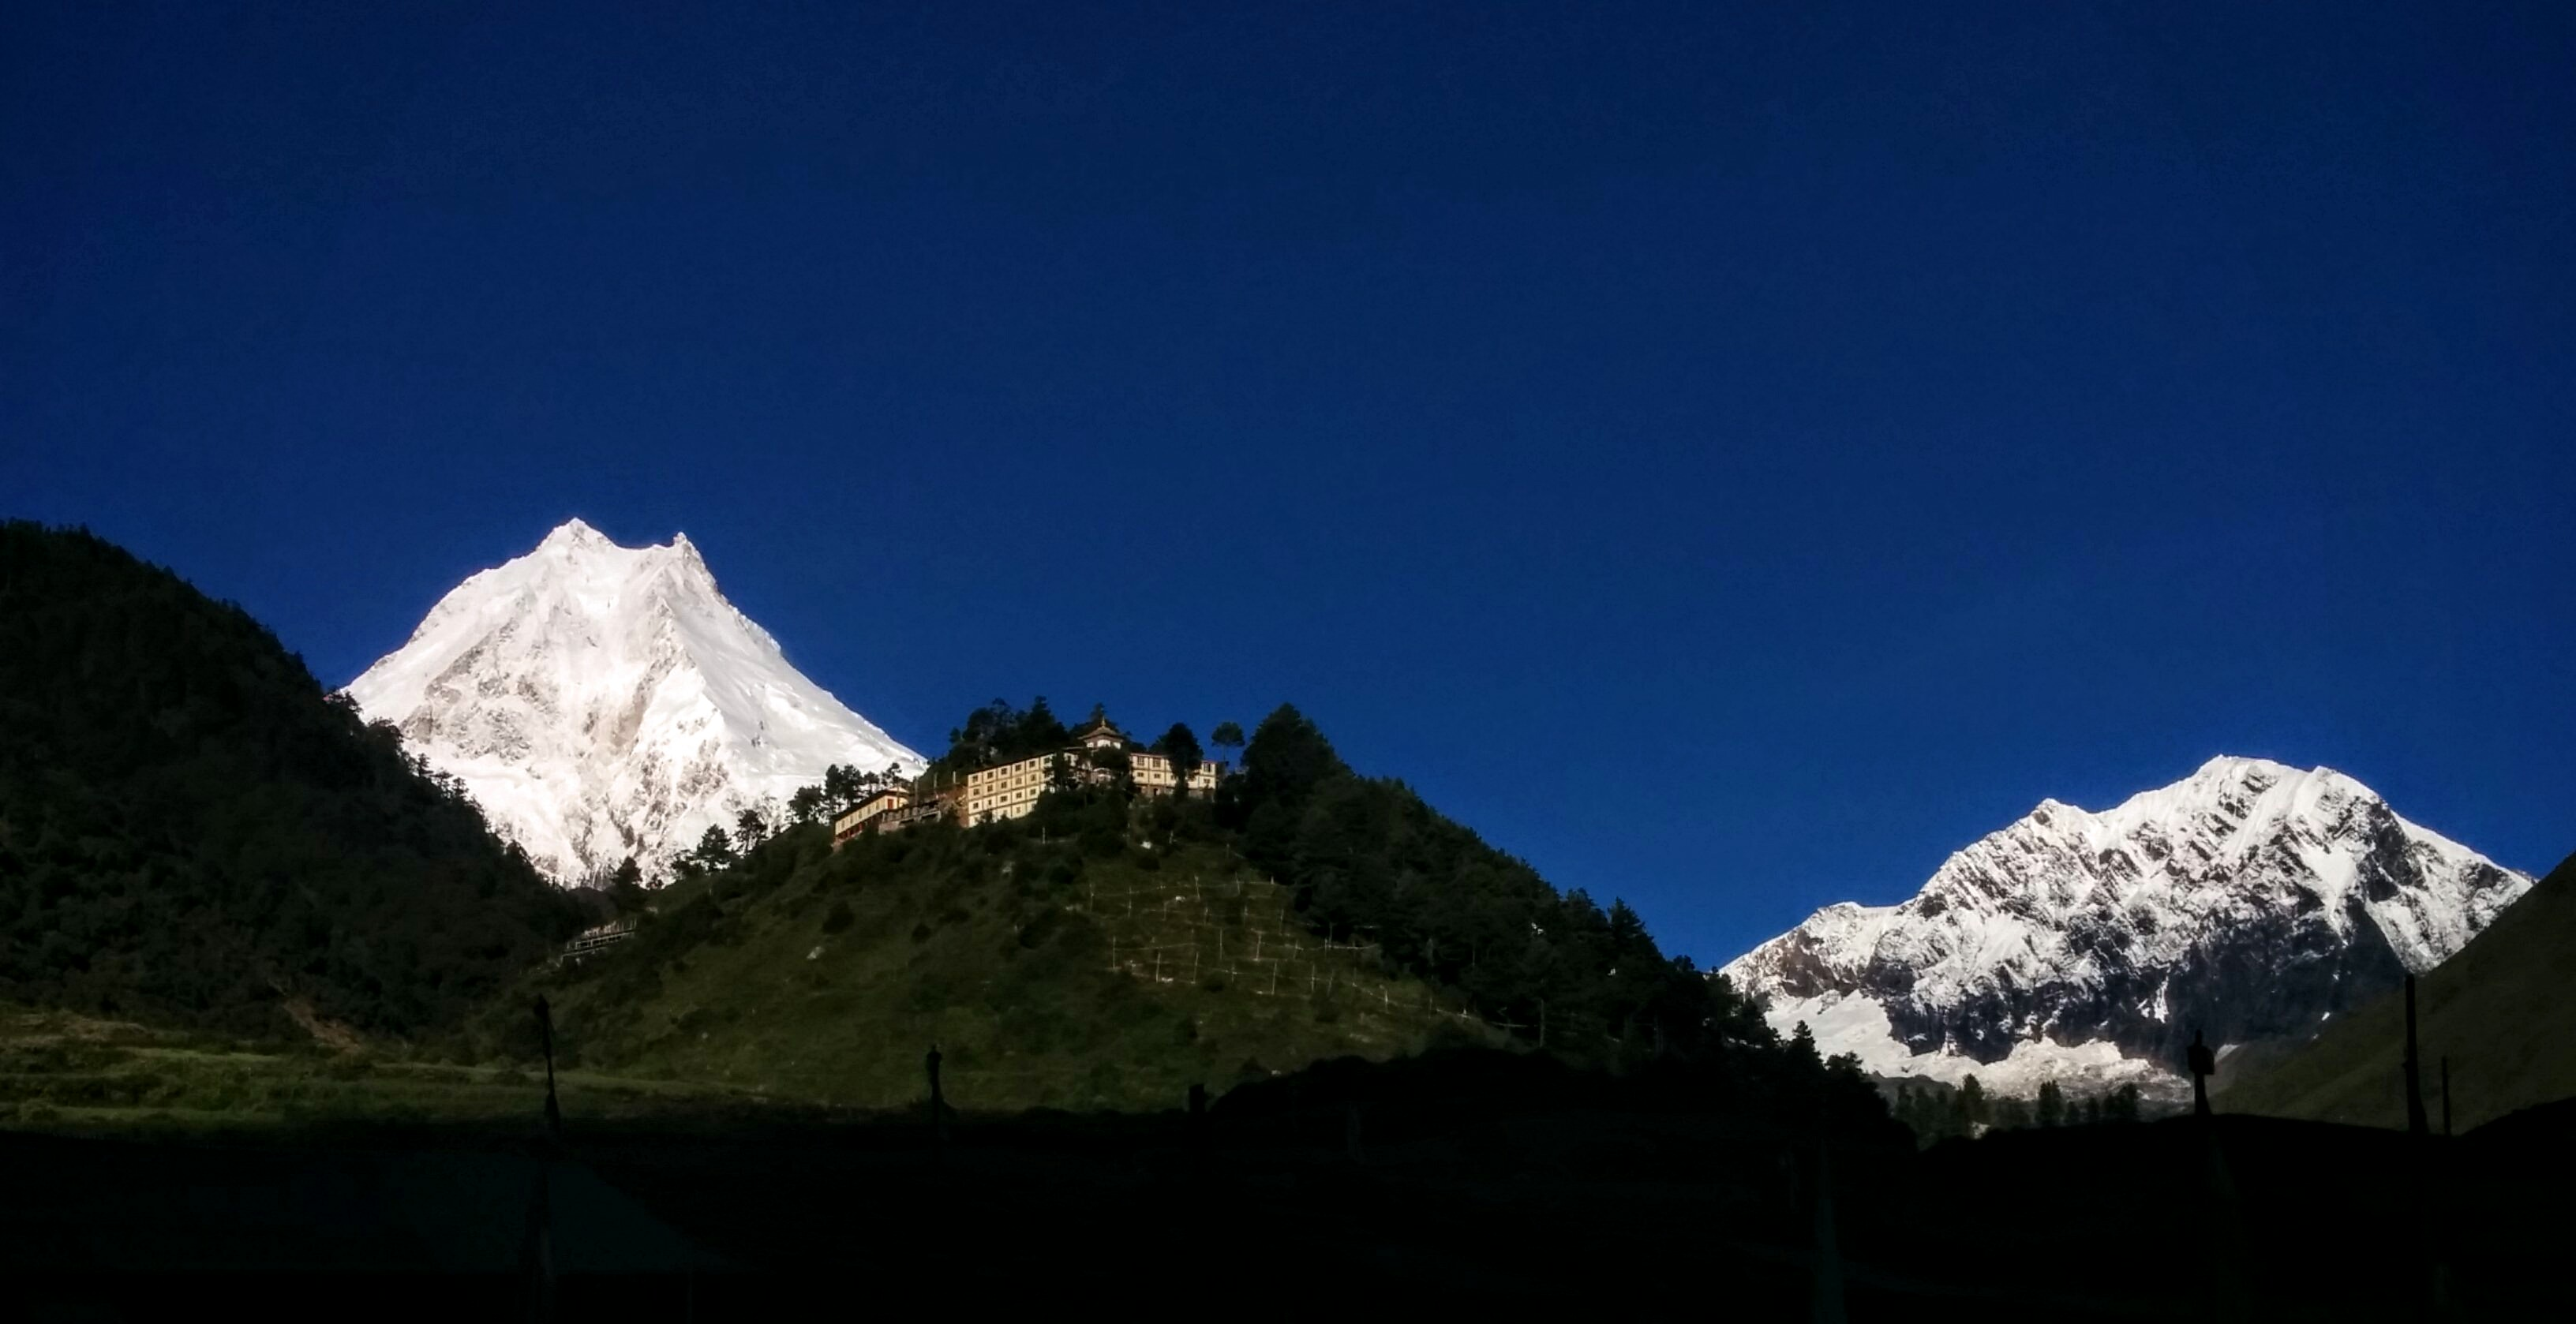 Manaslu on the left, silhouetted by the monastery in Lho